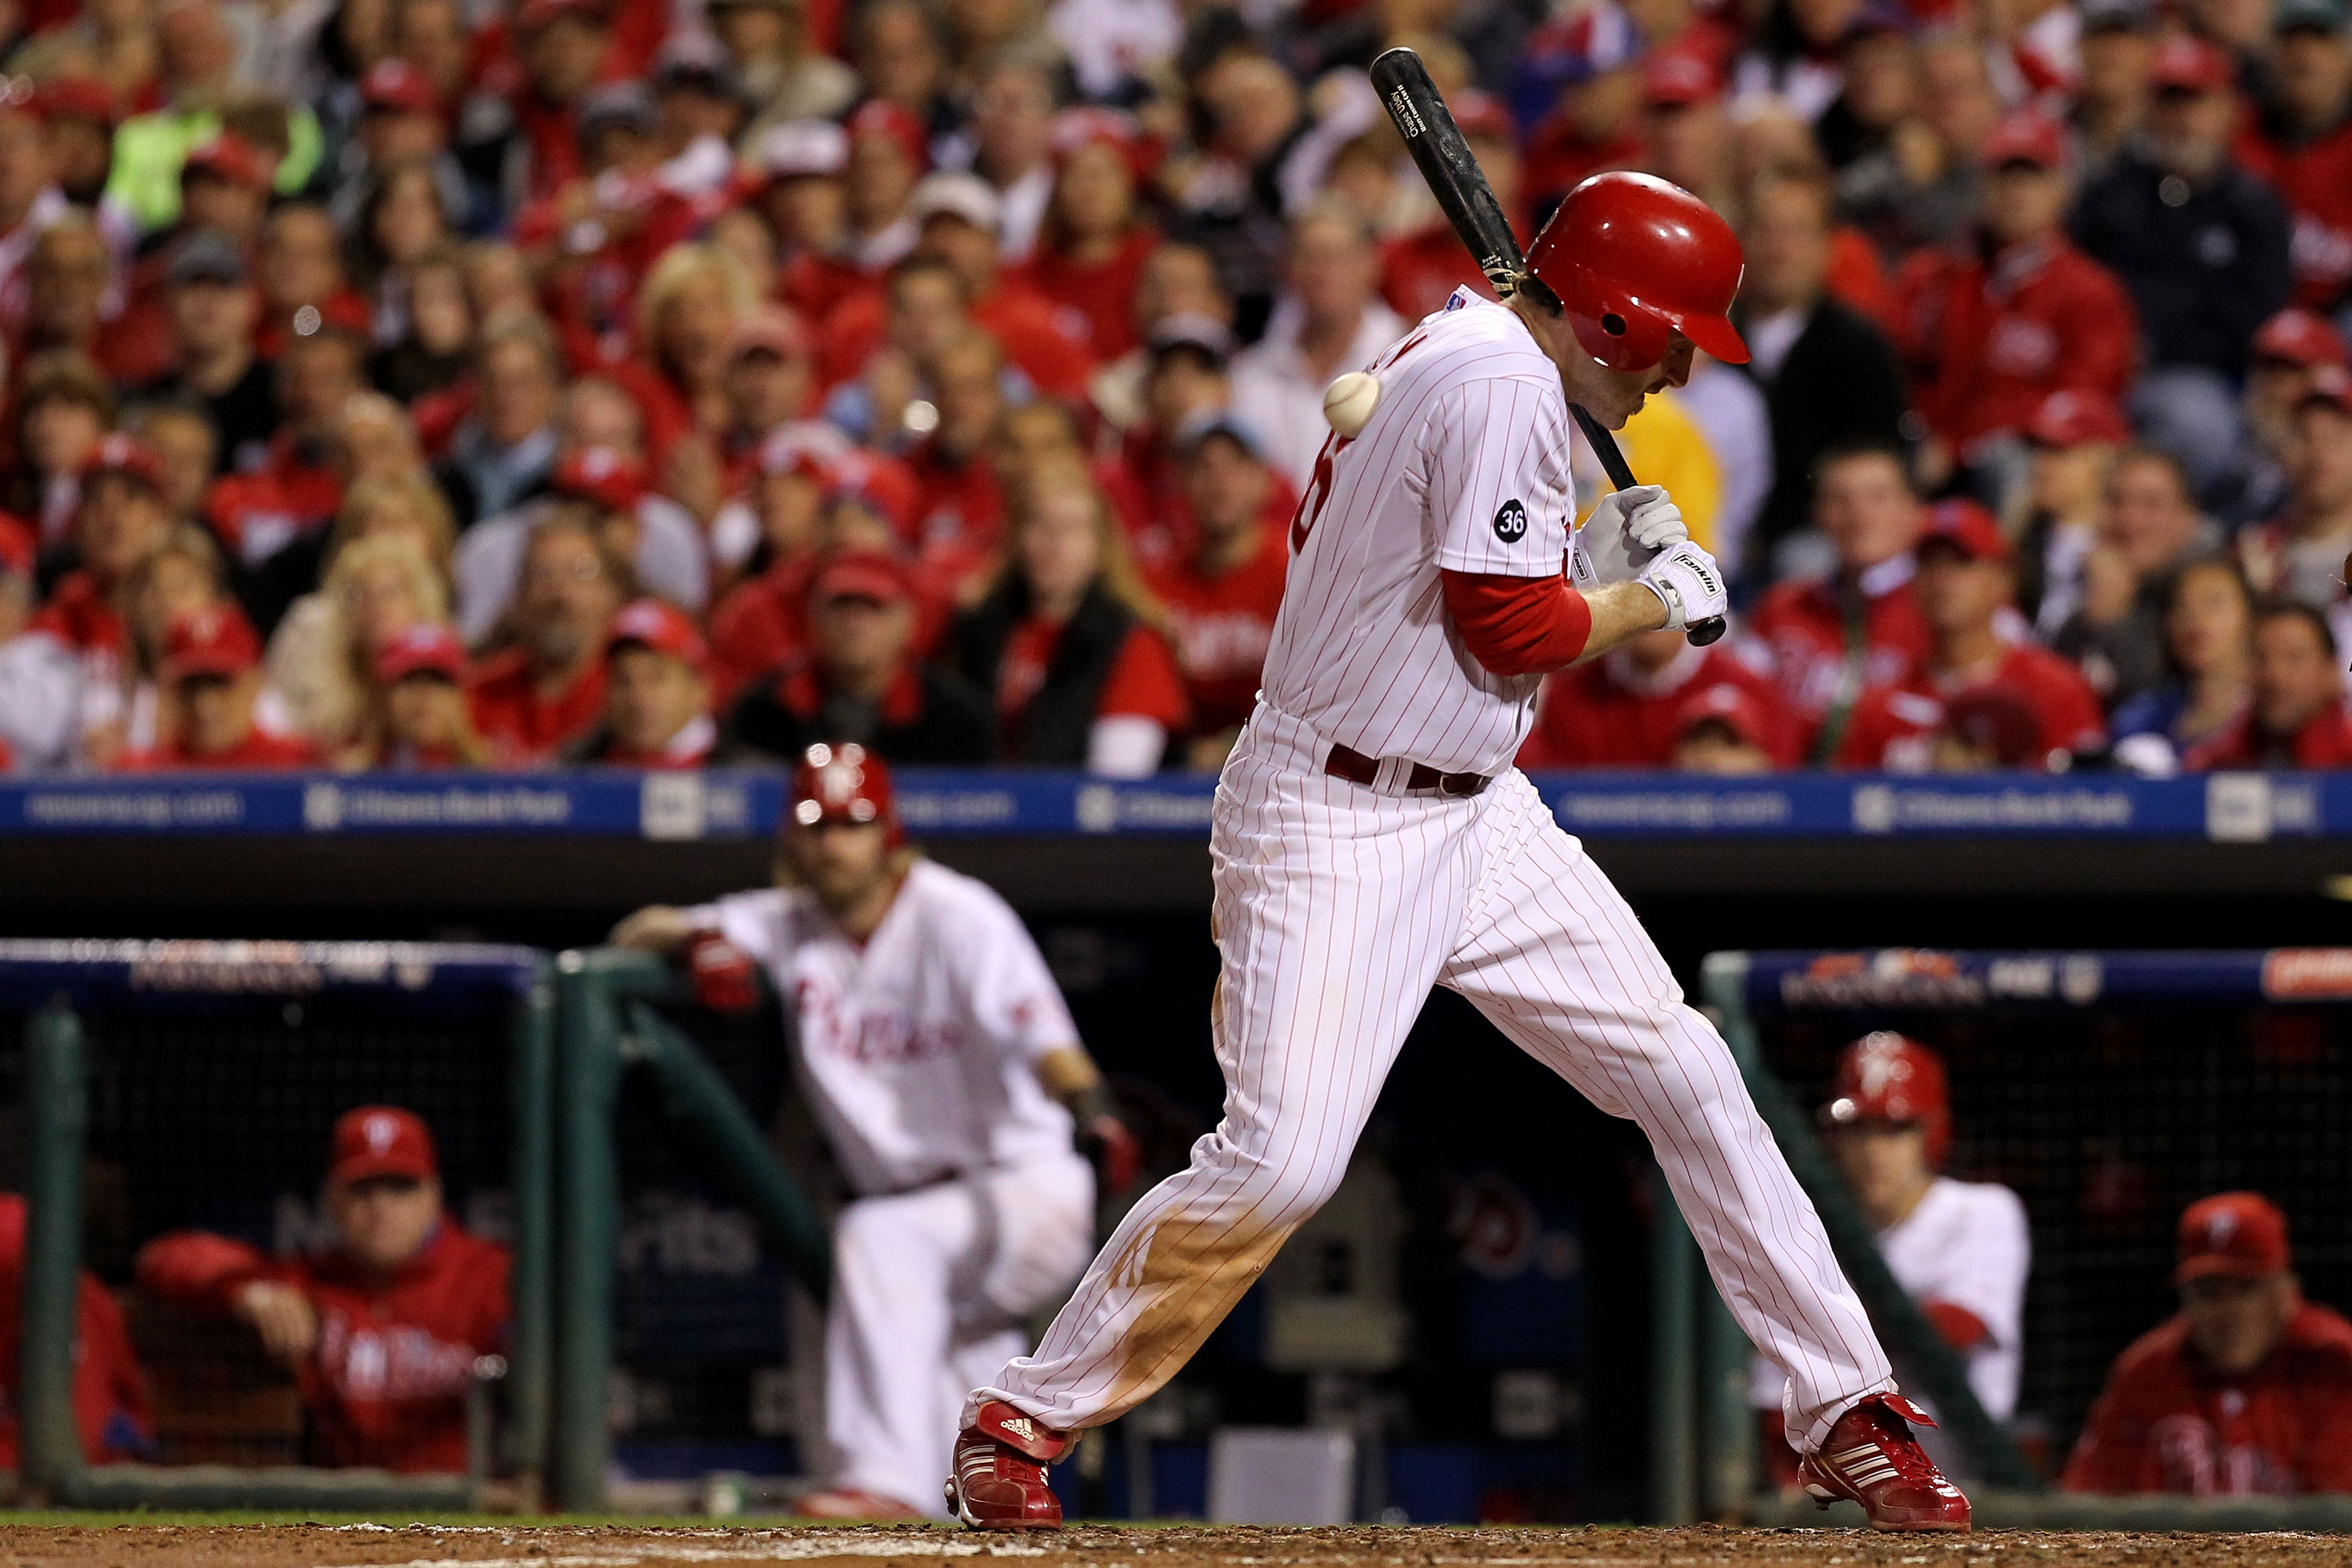 PHILADELPHIA - OCTOBER 23:  Chase Utley #26 of the Philadelphia Phillies is hit by a pitch in the third inning against the San Francisco Giants in Game Six of the NLCS during the 2010 MLB Playoffs at Citizens Bank Park on October 23, 2010 in Philadelphia,